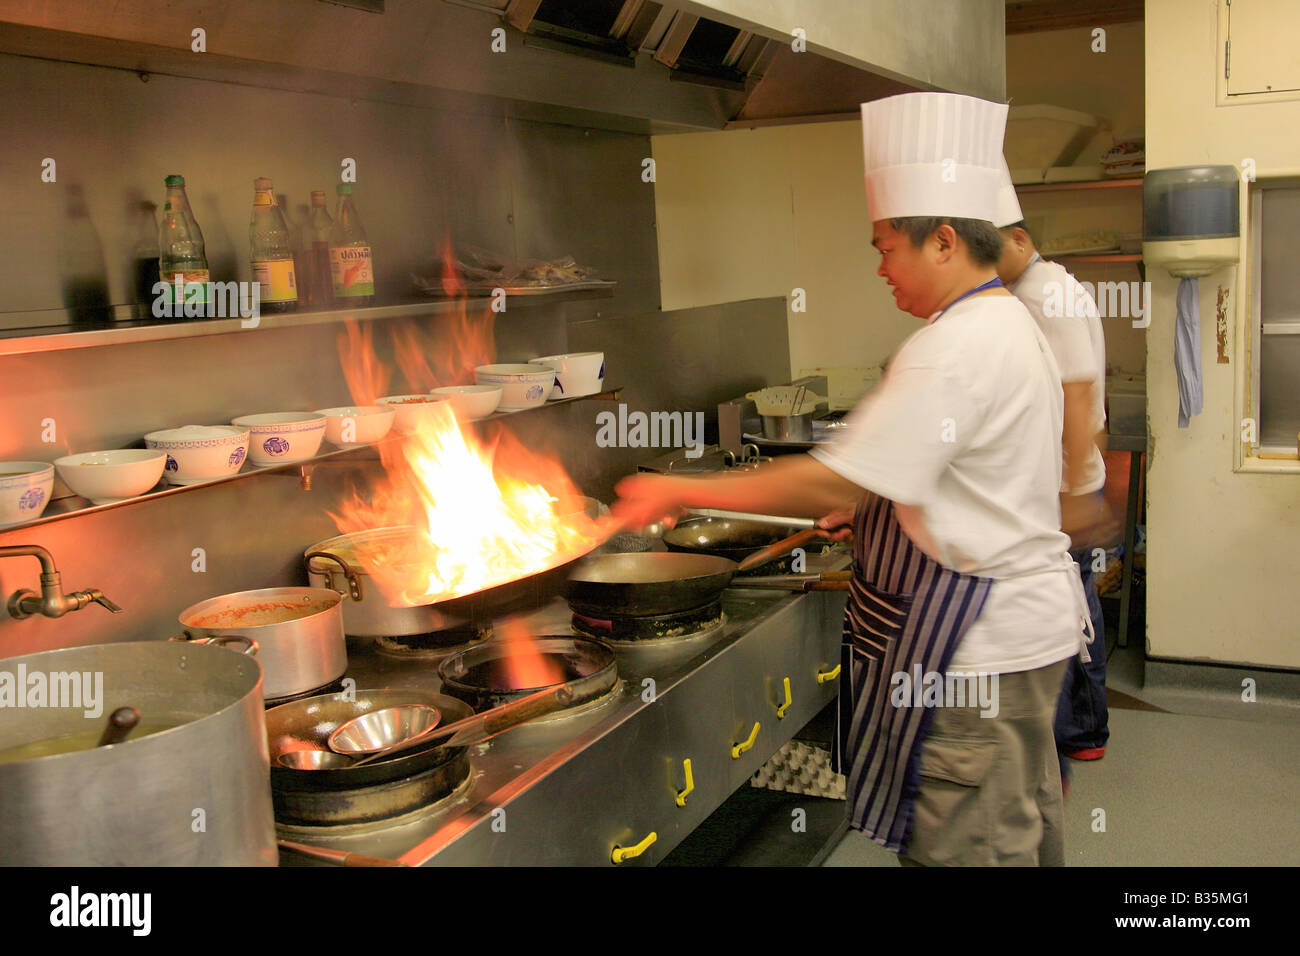 Male Thai Chef Cooking With Flaming Wok In A Restaurant Kitchen, Oriental  Cuisine   Stock